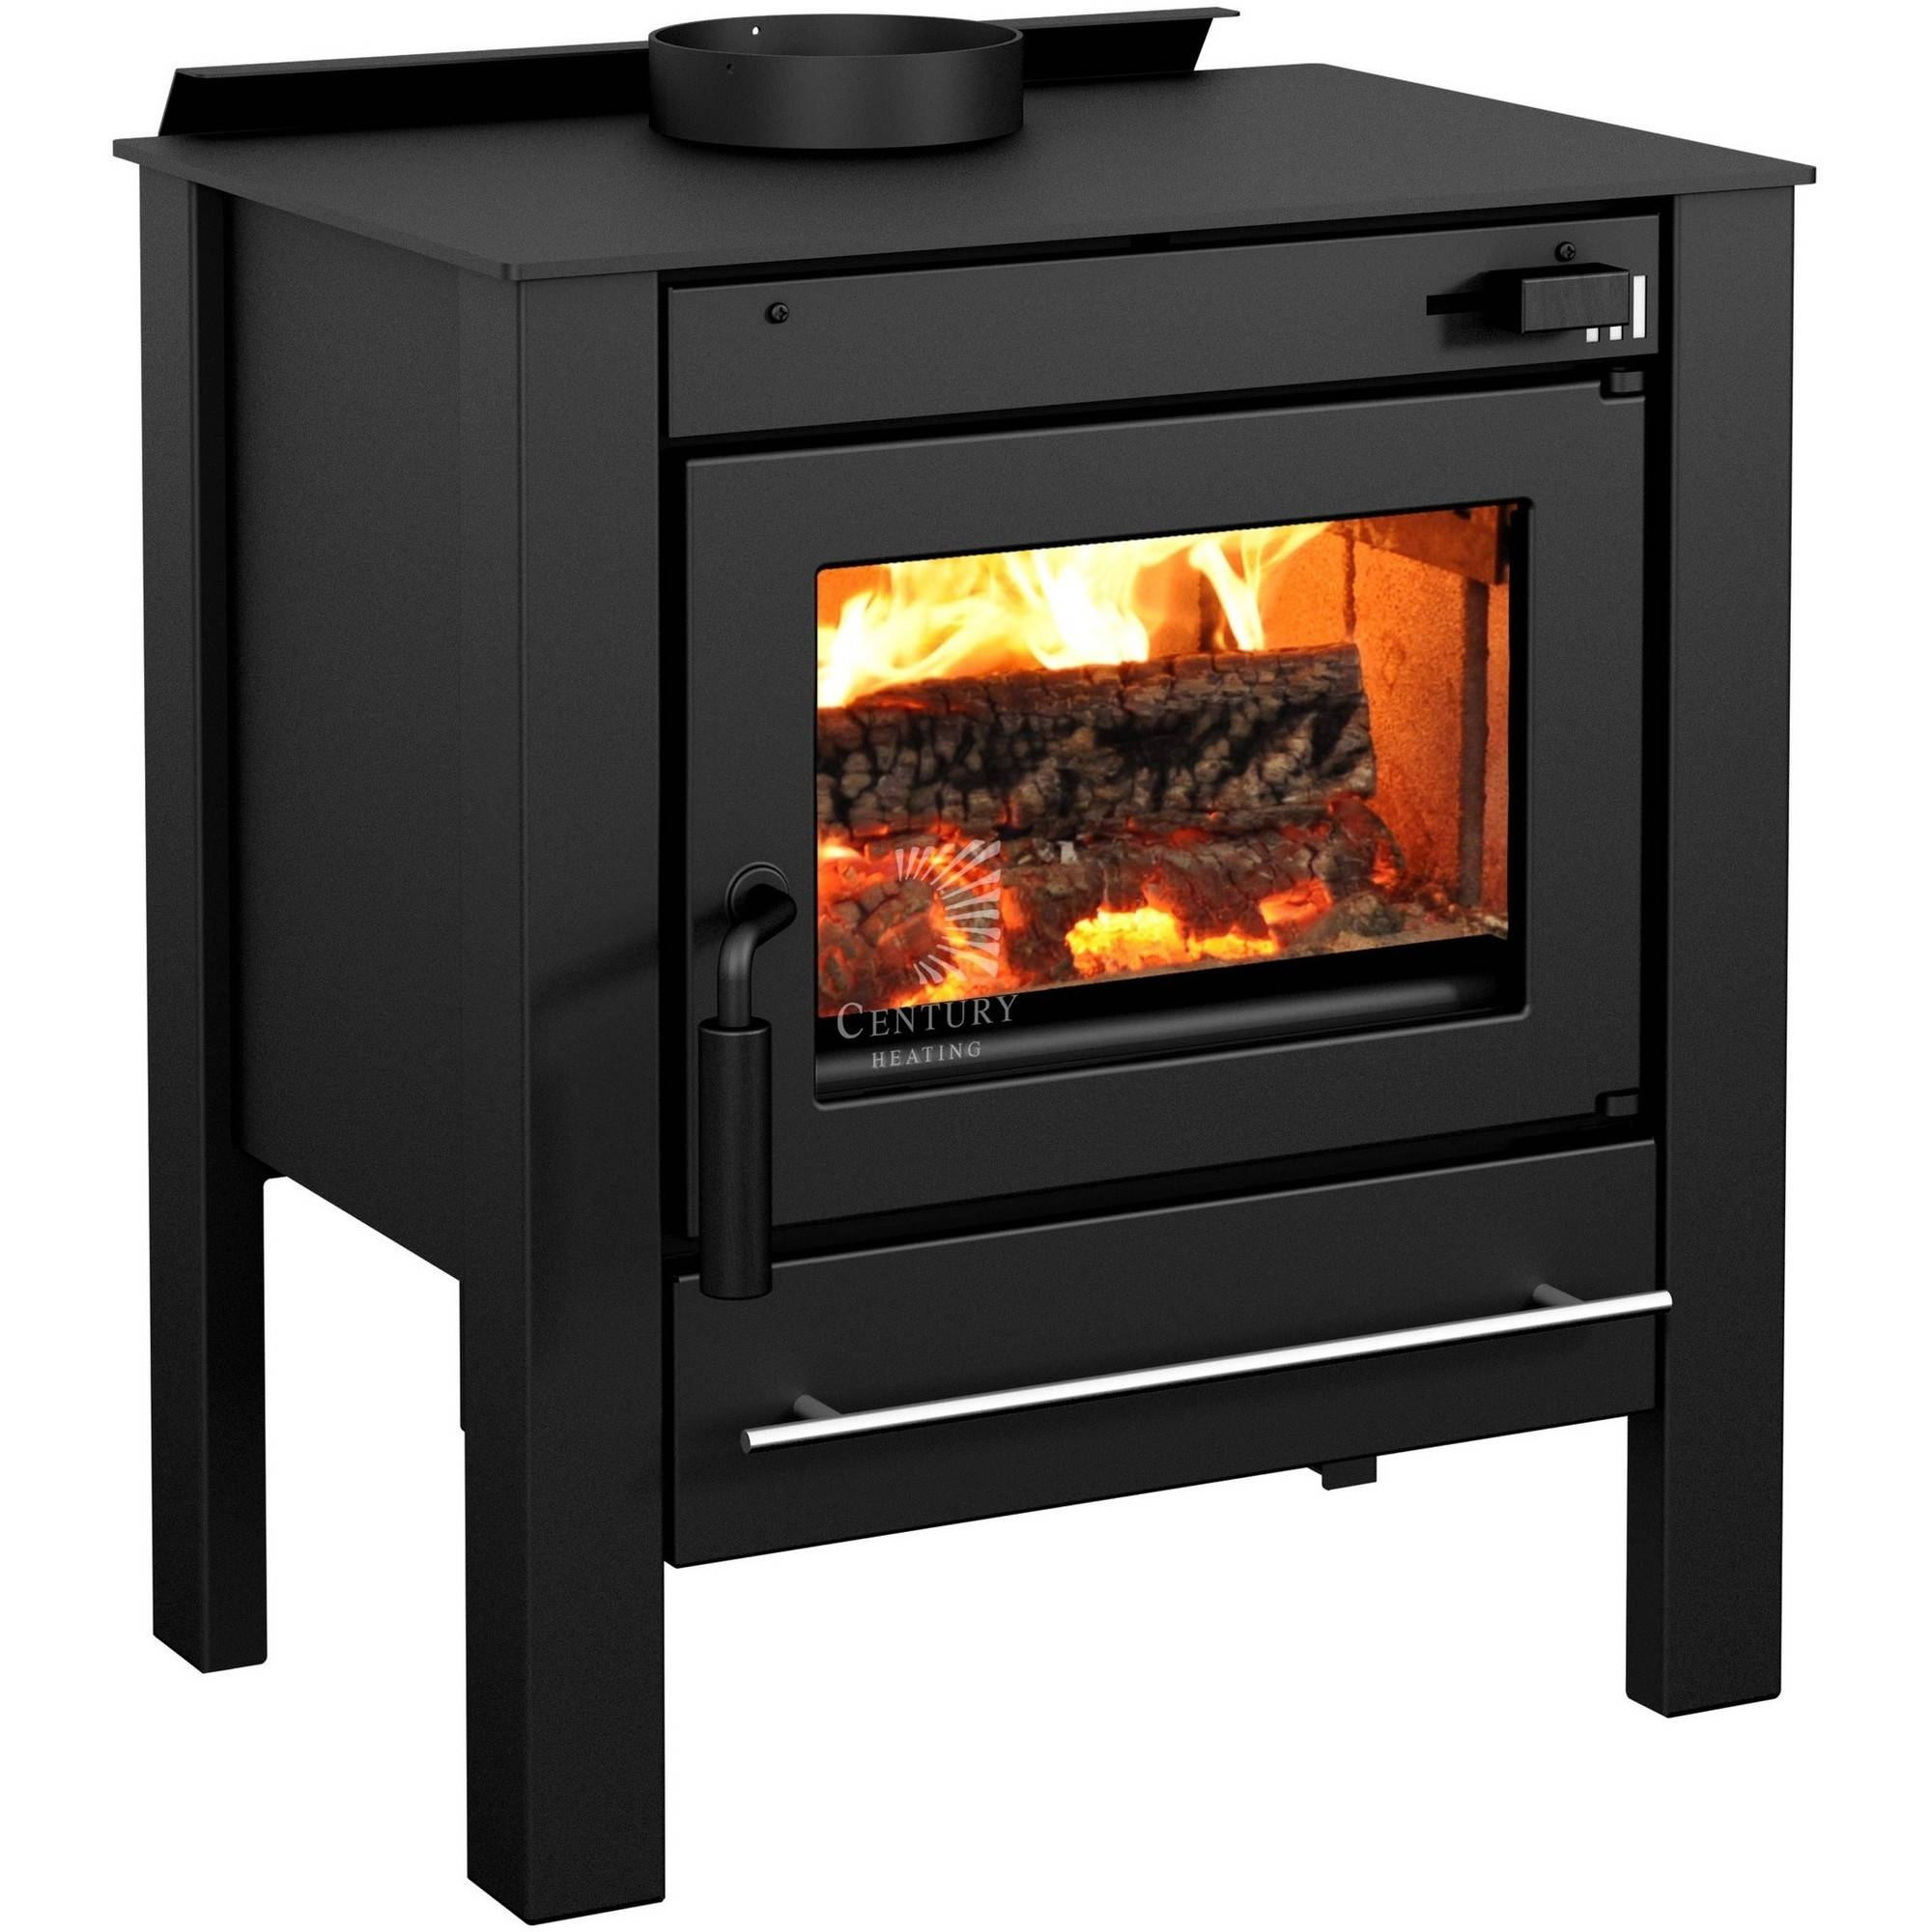 northwest cubic foot firebox wood logs easily stoves fireplaces delta blower fireplace burning rsf fusion take will